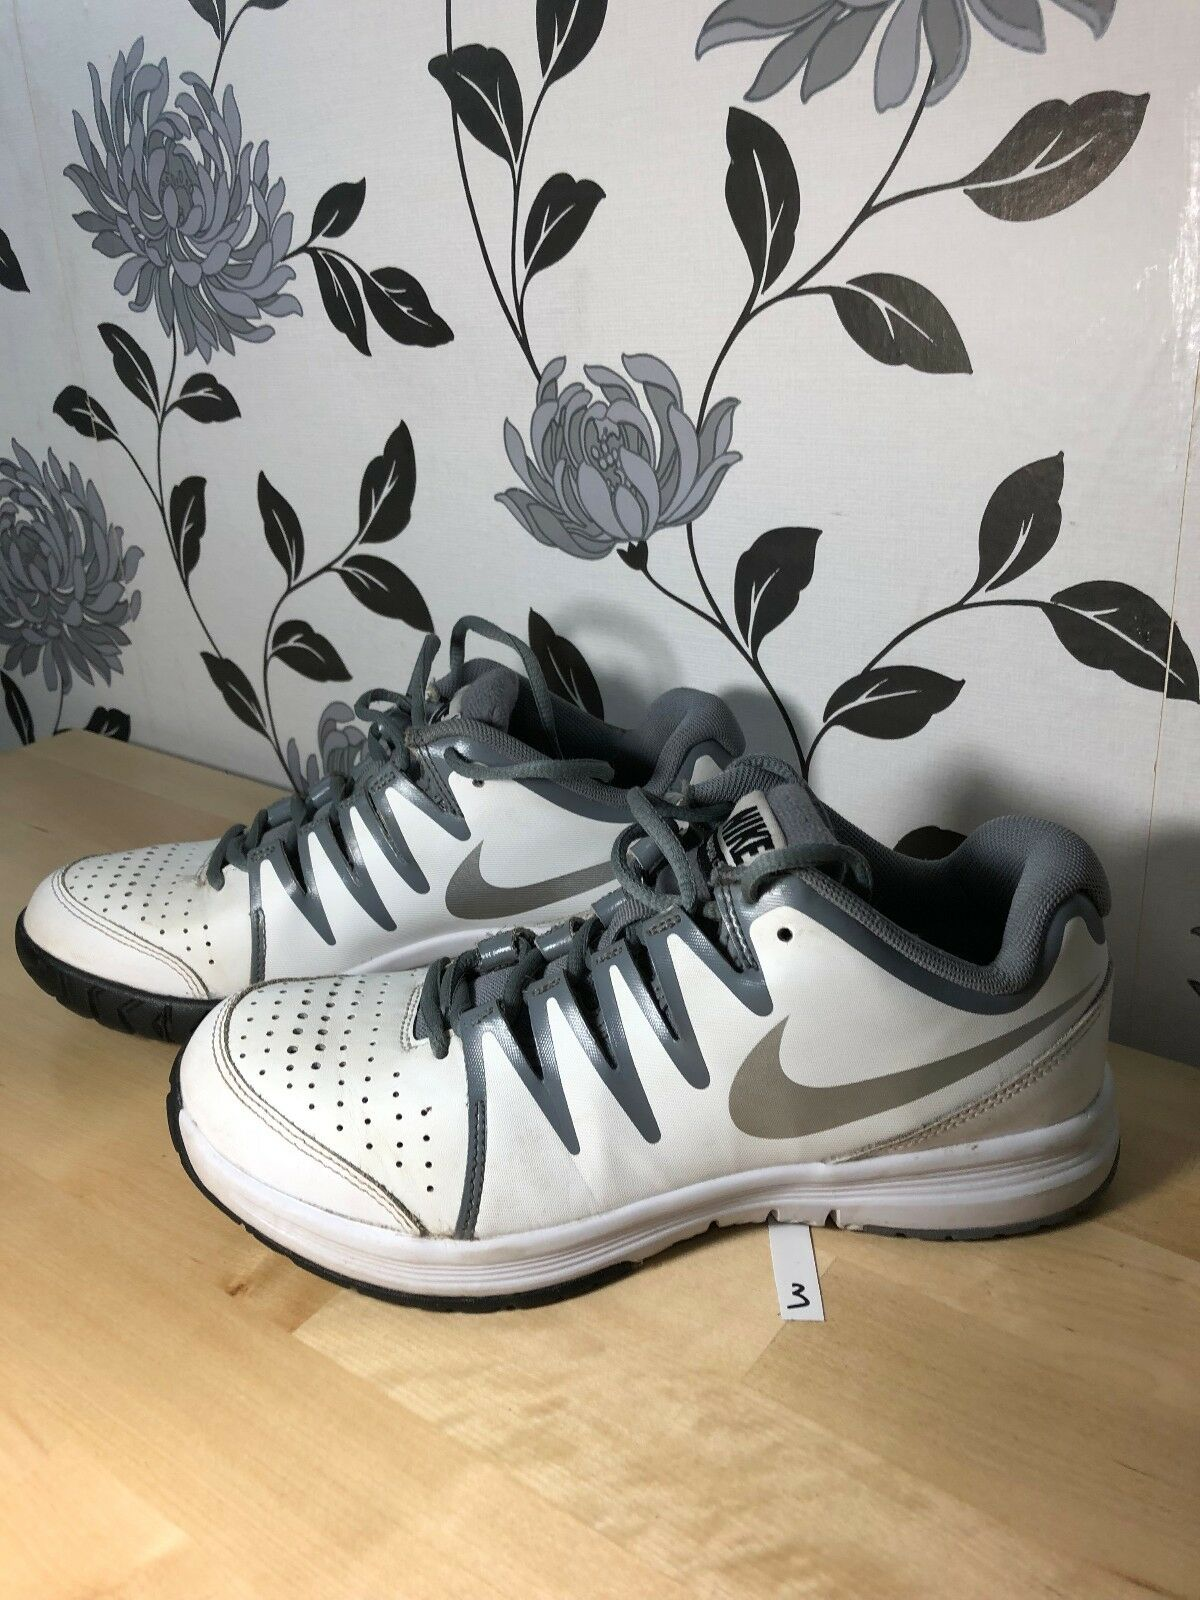 NIKE VAPOR COURT Sneakers shoes Trainers White Grey Eur 39 FITNESS SPORTS